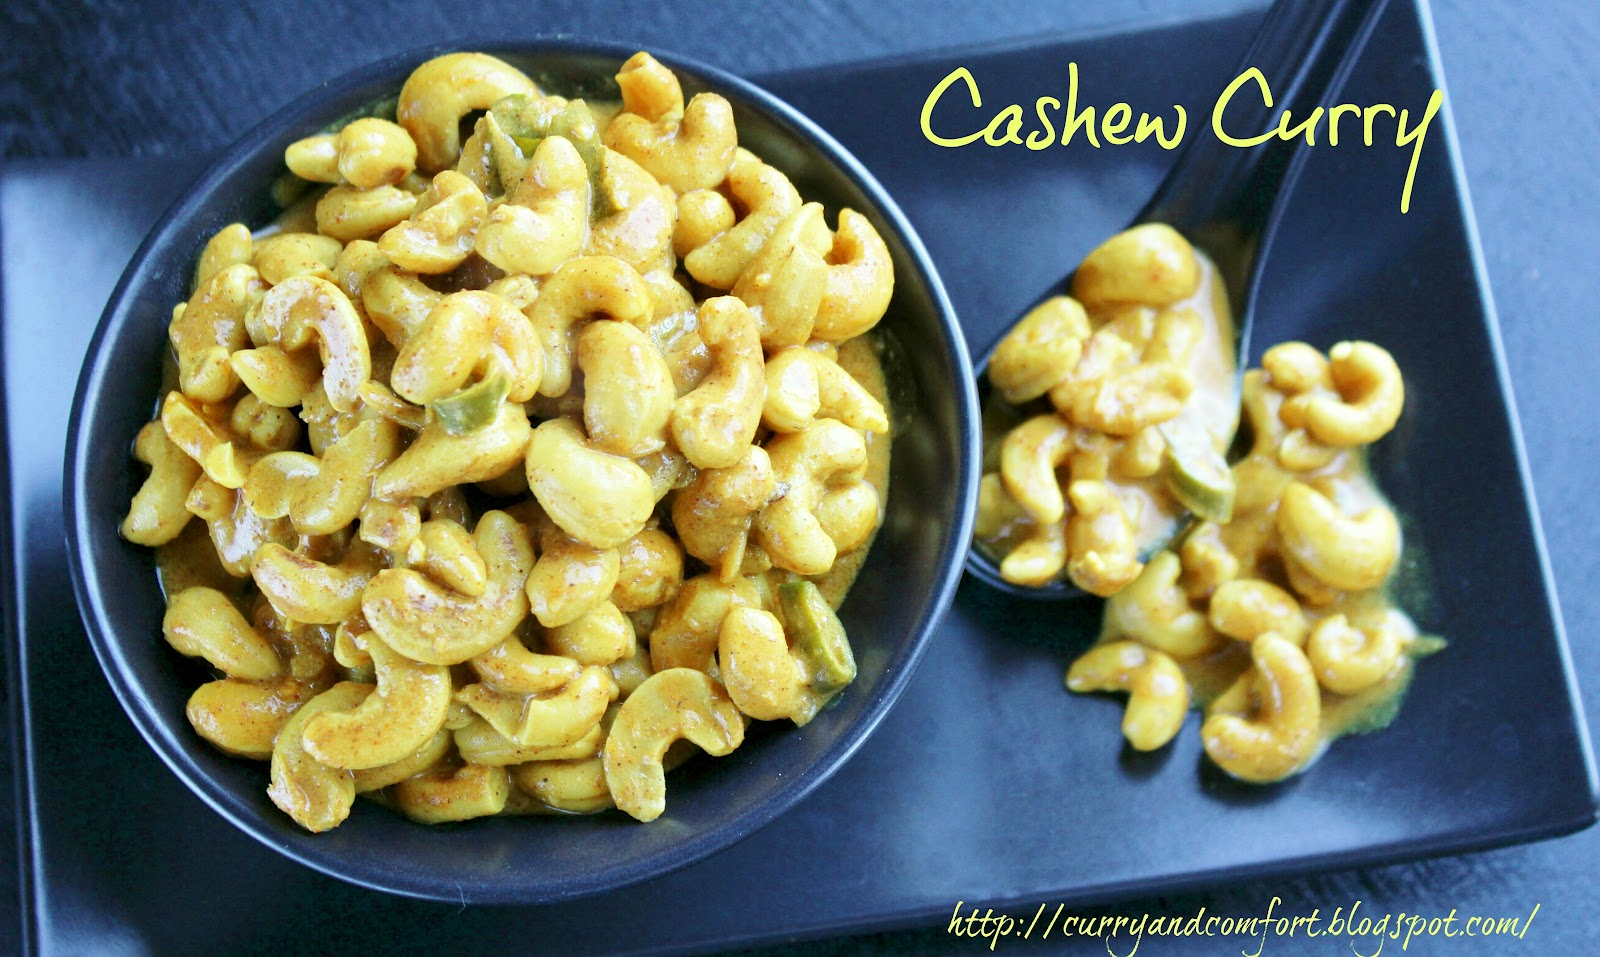 Curry and Comfort: Sri Lankan Cashew Curry